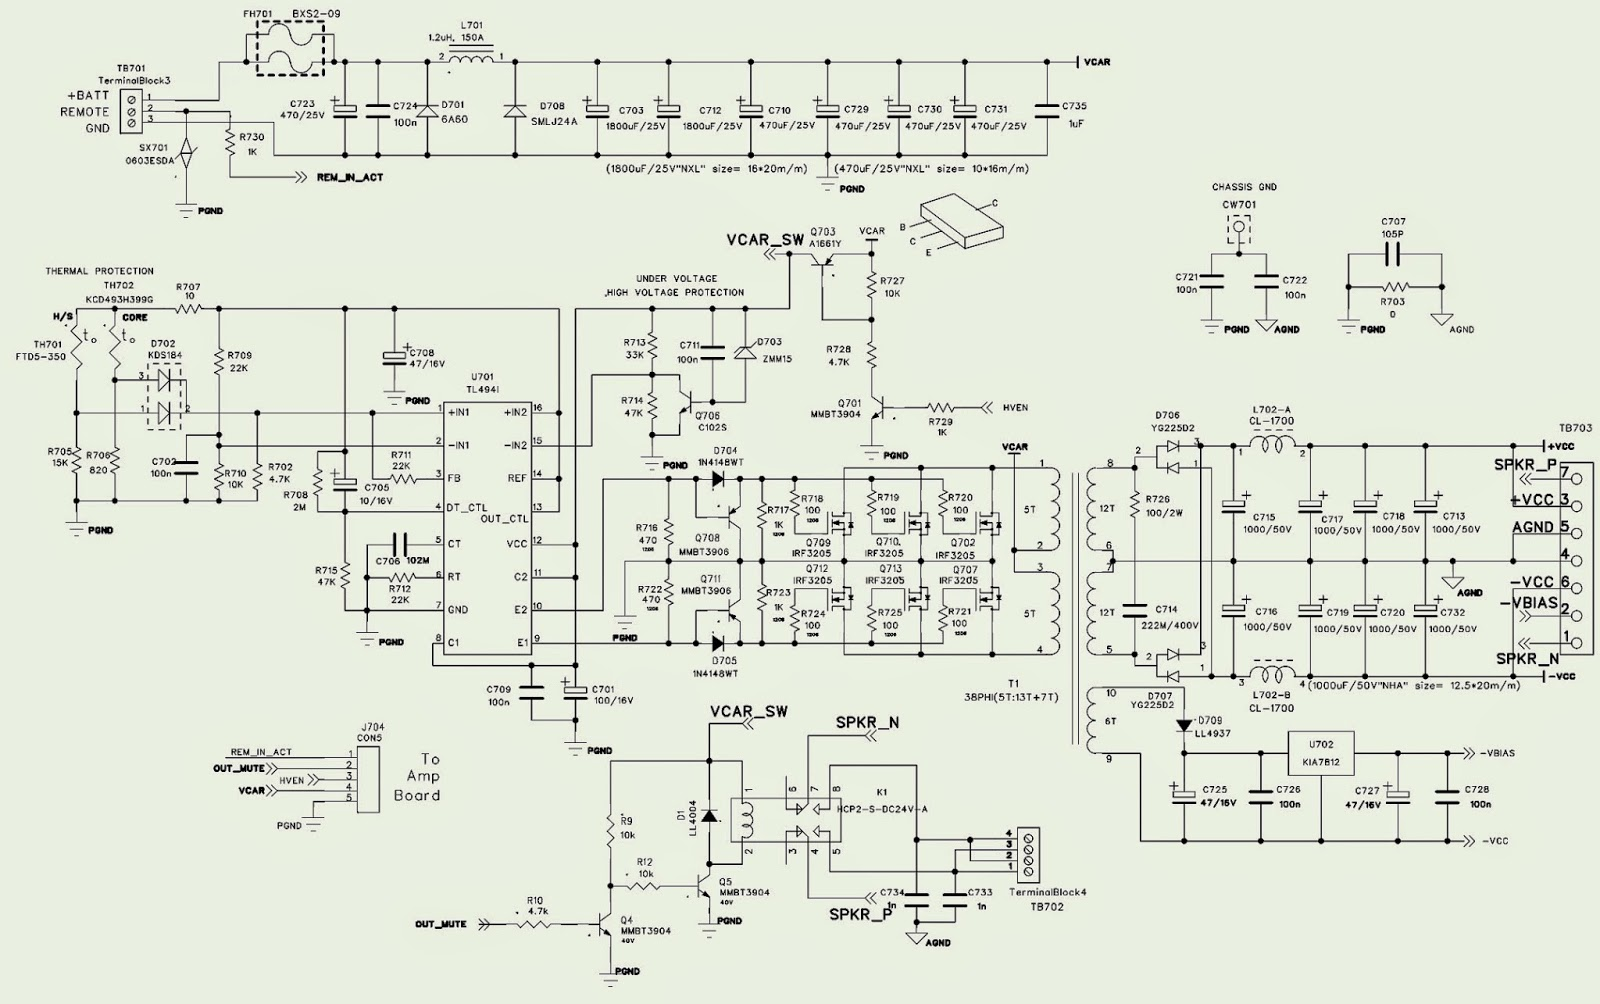 Smps Schematic Diagram 2007 Ford F150 Trailer Plug Wiring Various Jbl Ms A5001 Power Amplifier